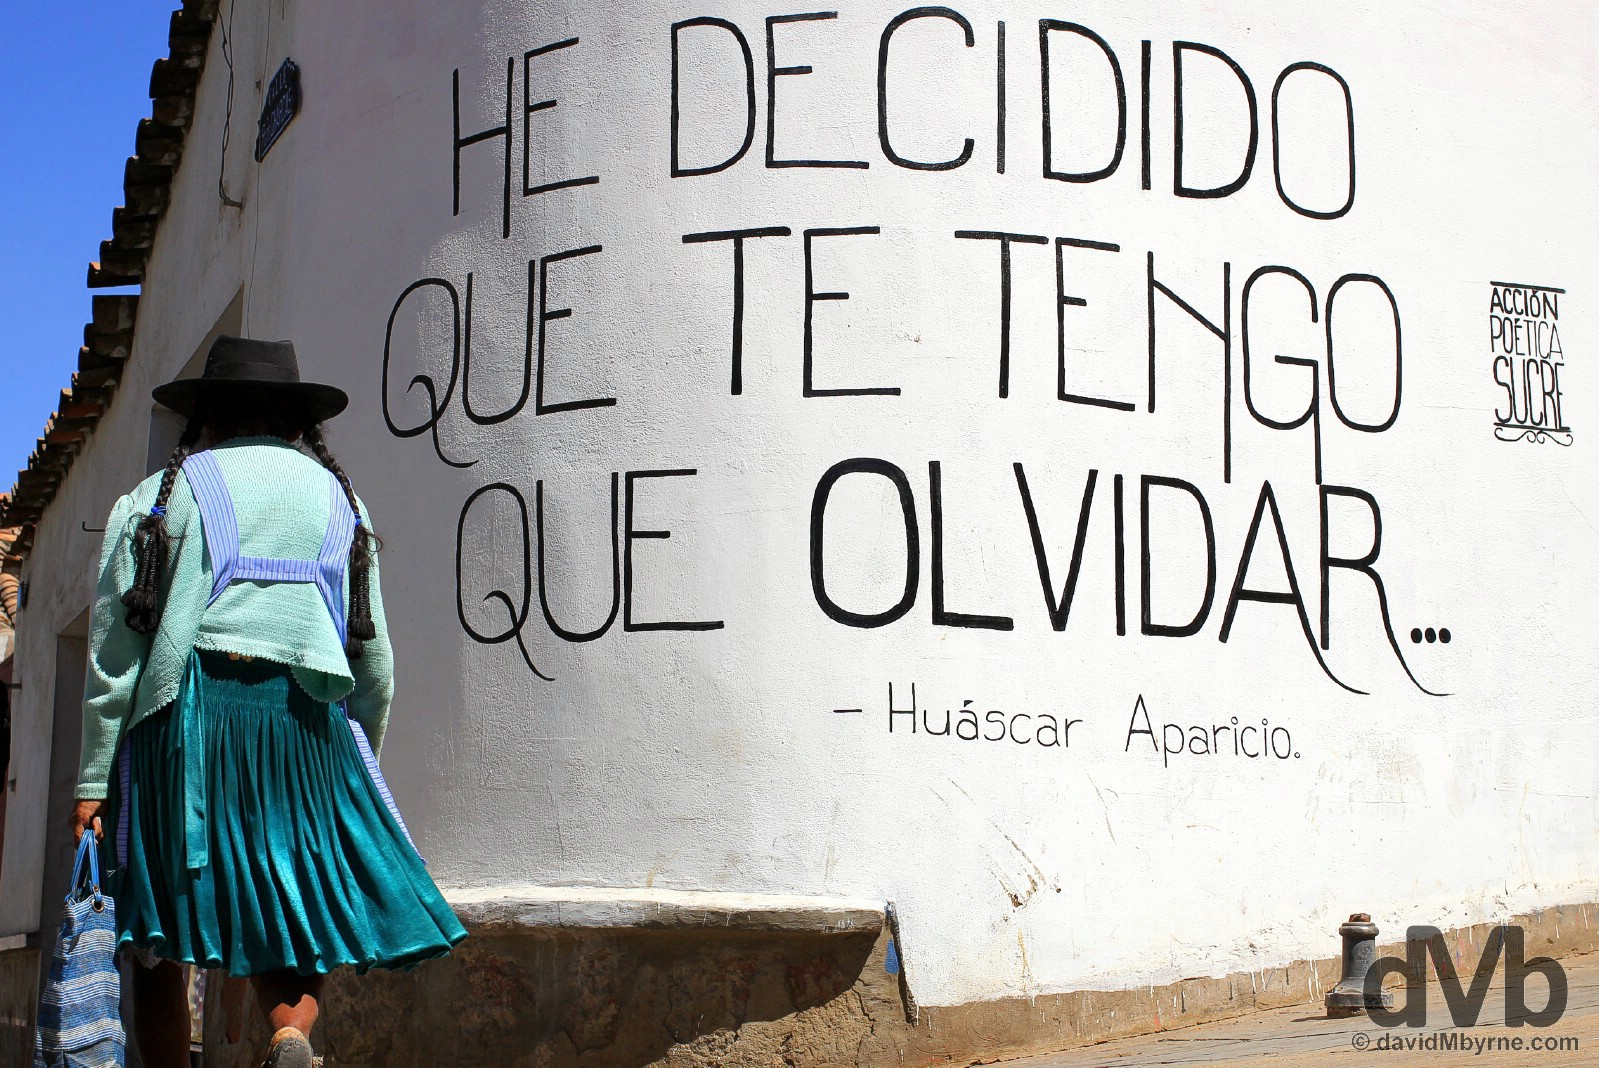 'I have decided that I have to forget'. A quote by Bolivian folk singer and Sucre native Huascar Aparicio, who died in a car crash in 2013 at the age of 41, on the streets of Sucre, Bolivia. August 30, 2015.